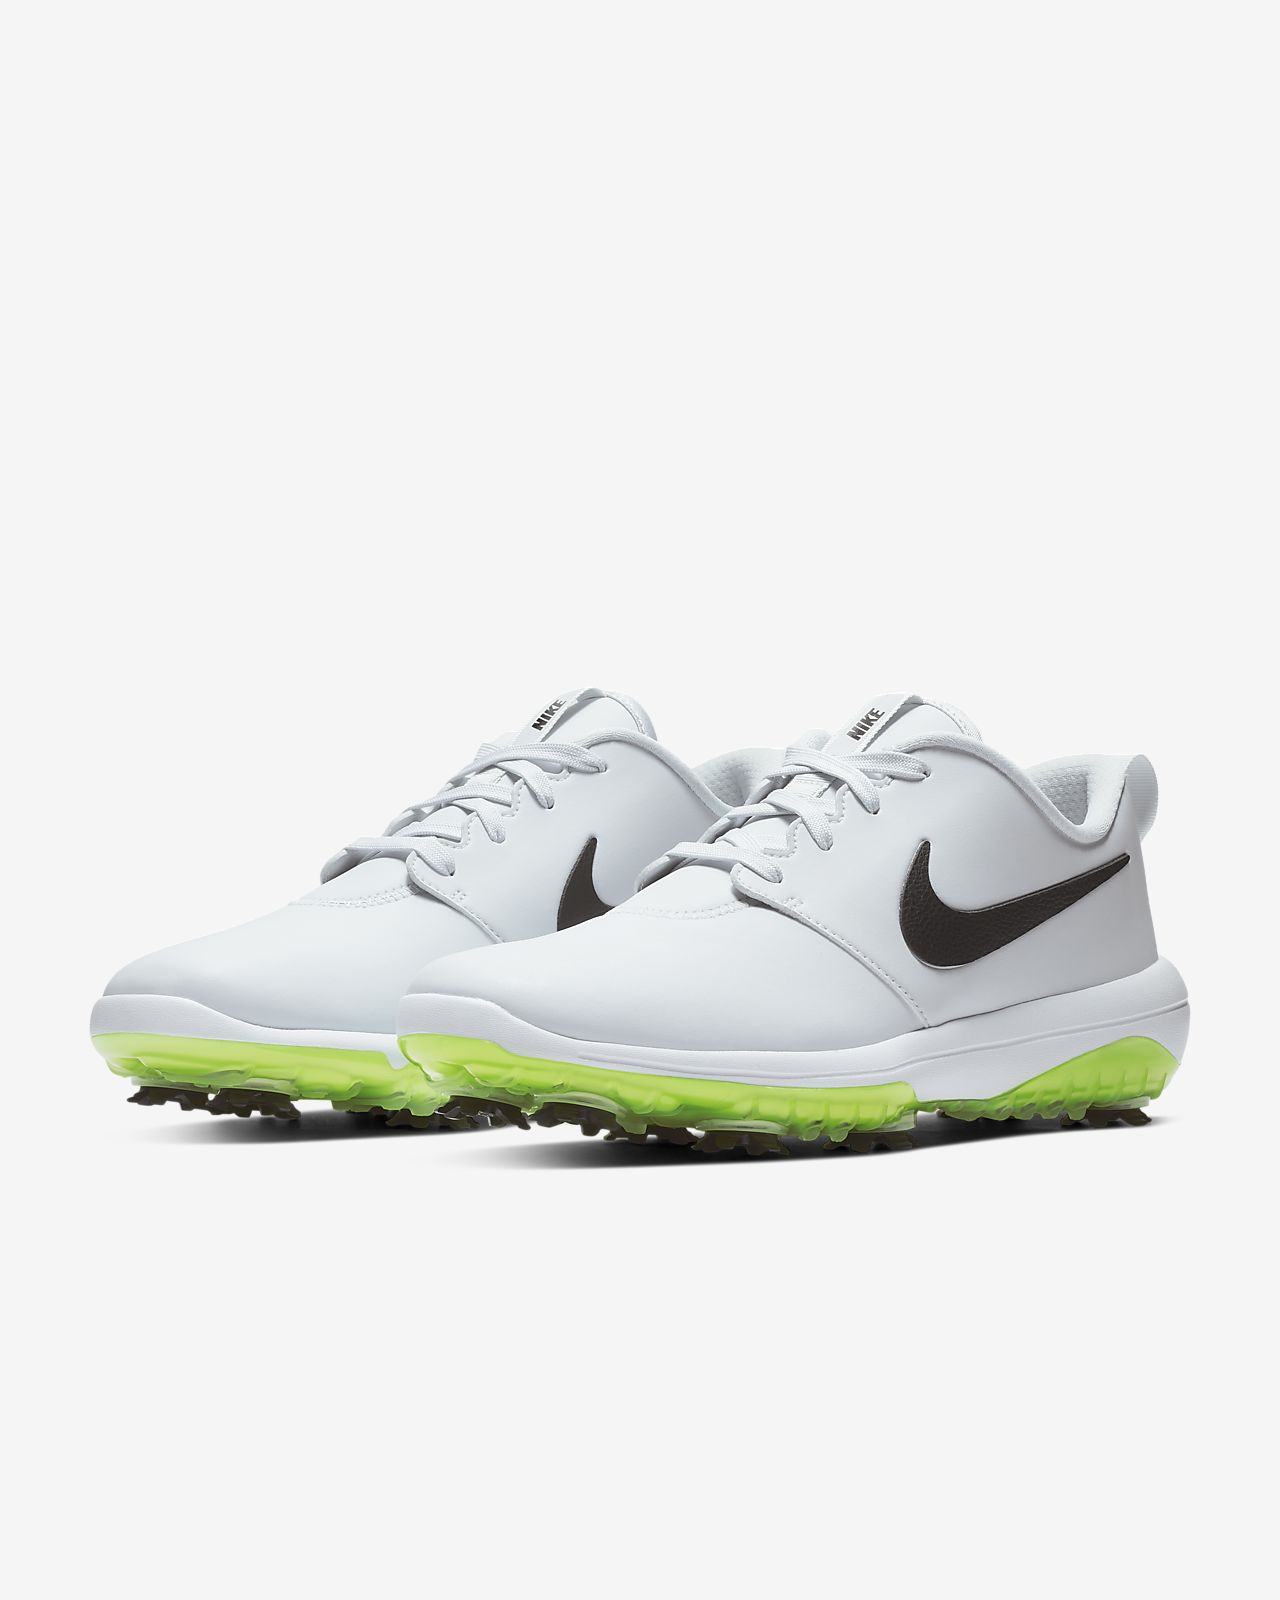 meet 9c6f5 180b5 ... Nike Roshe G Tour Men s Golf Shoe